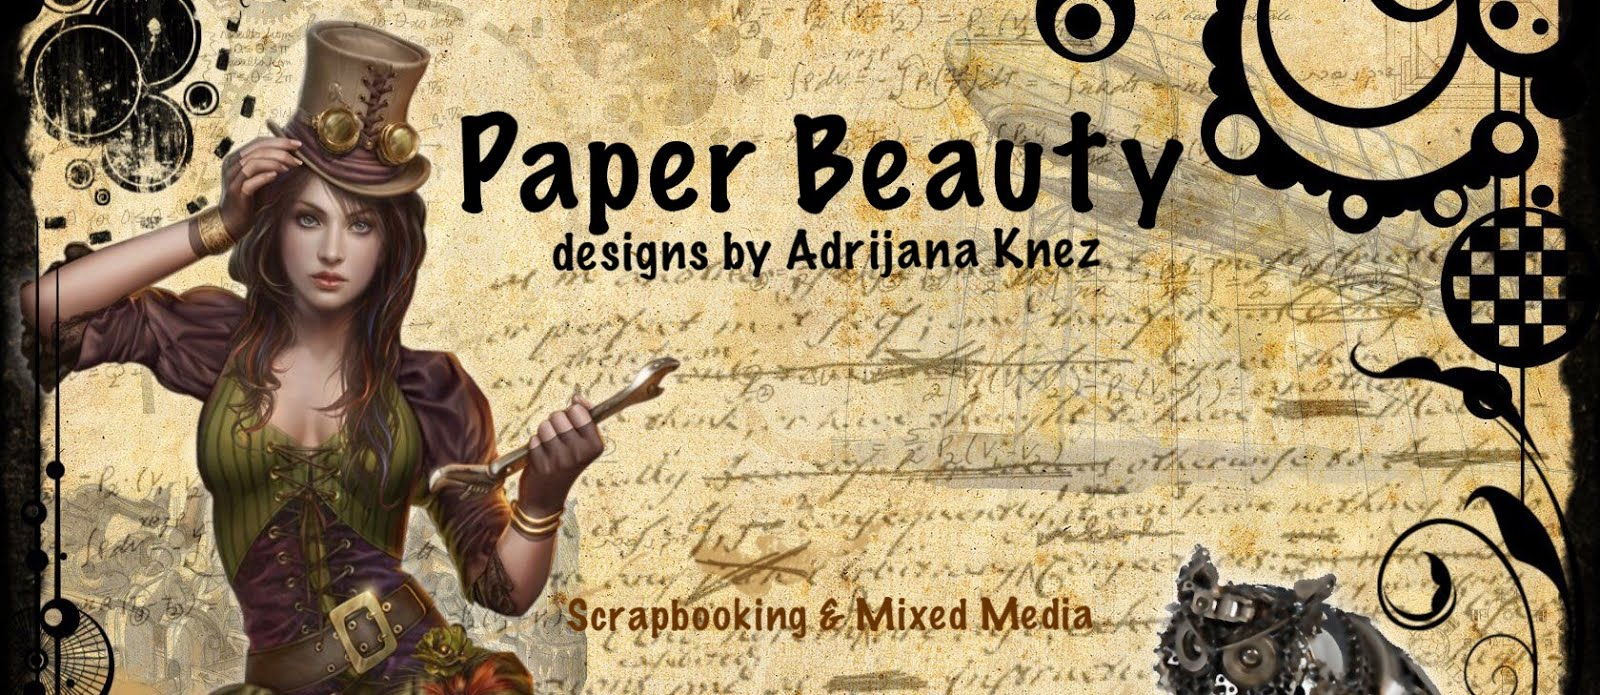 Paper Beauty AK